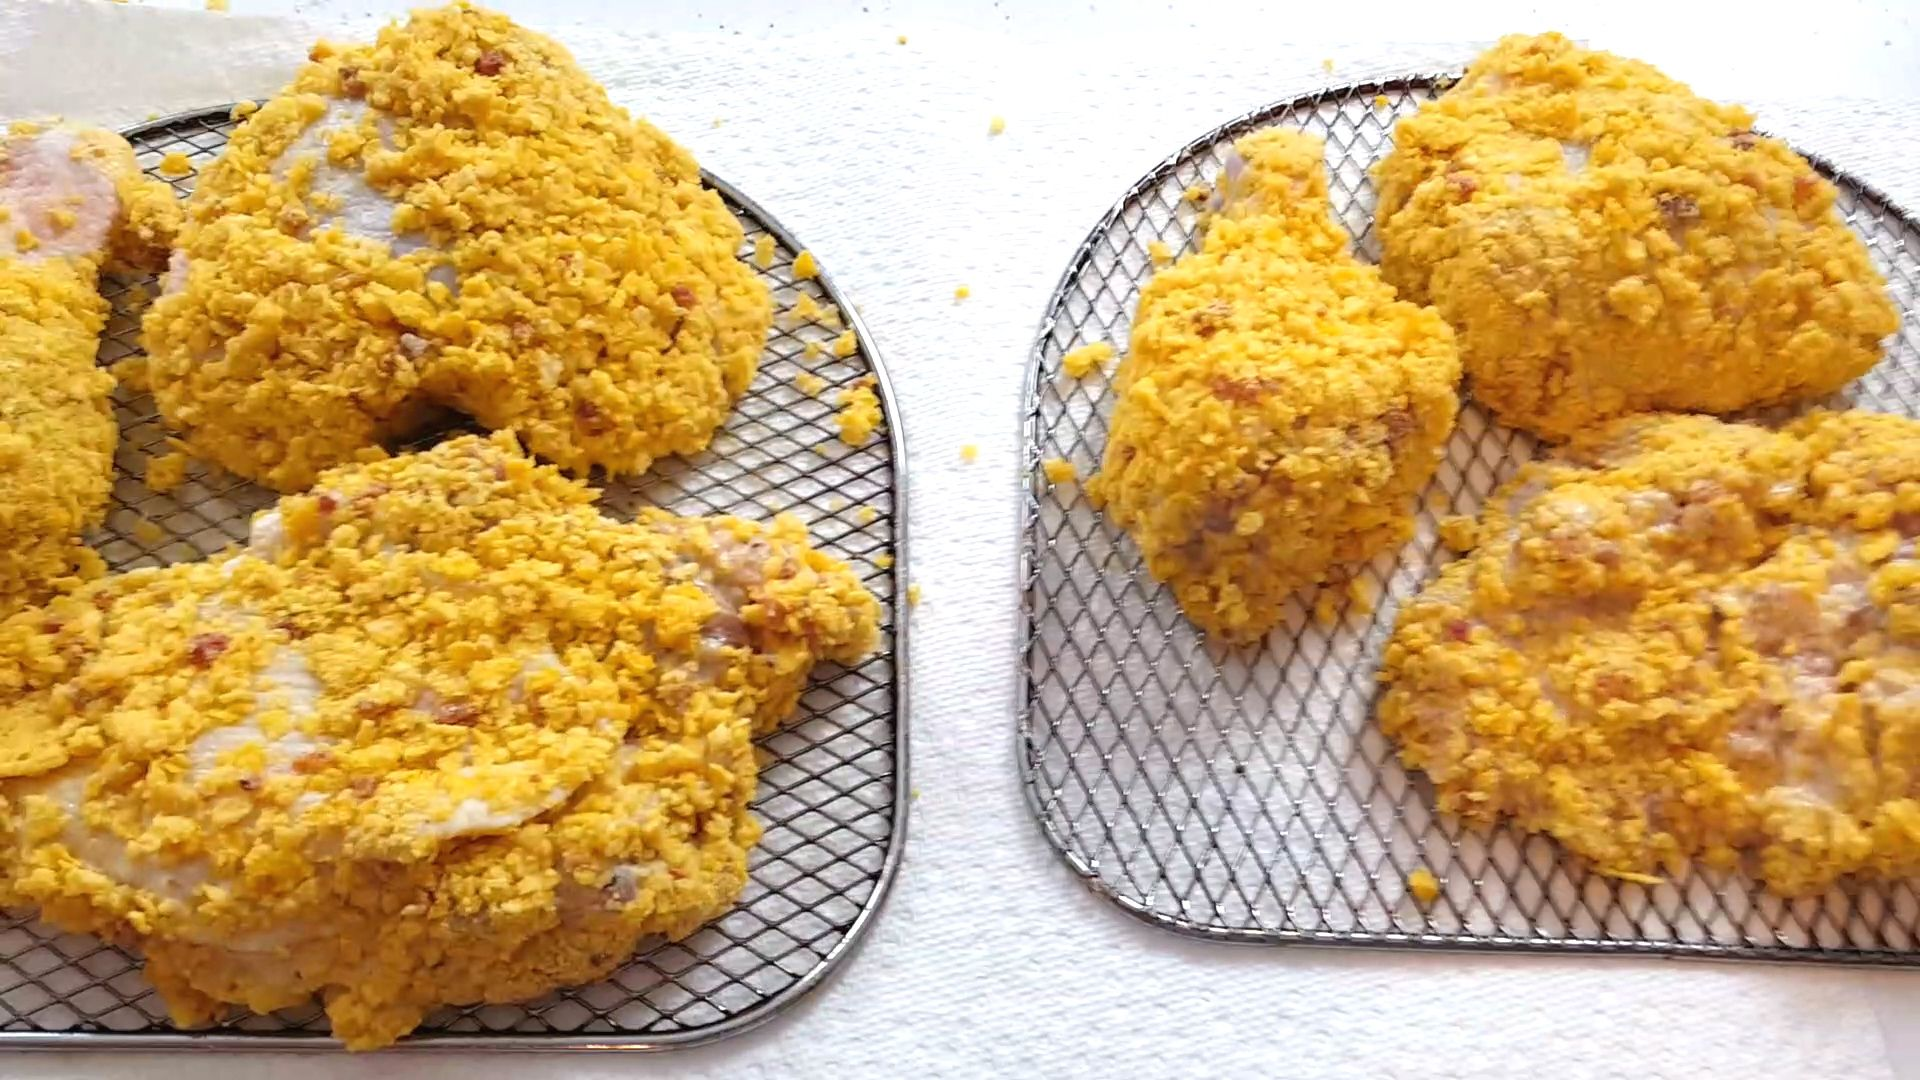 Crispy and Crunchy Air Fried Chicken made in the Power Air